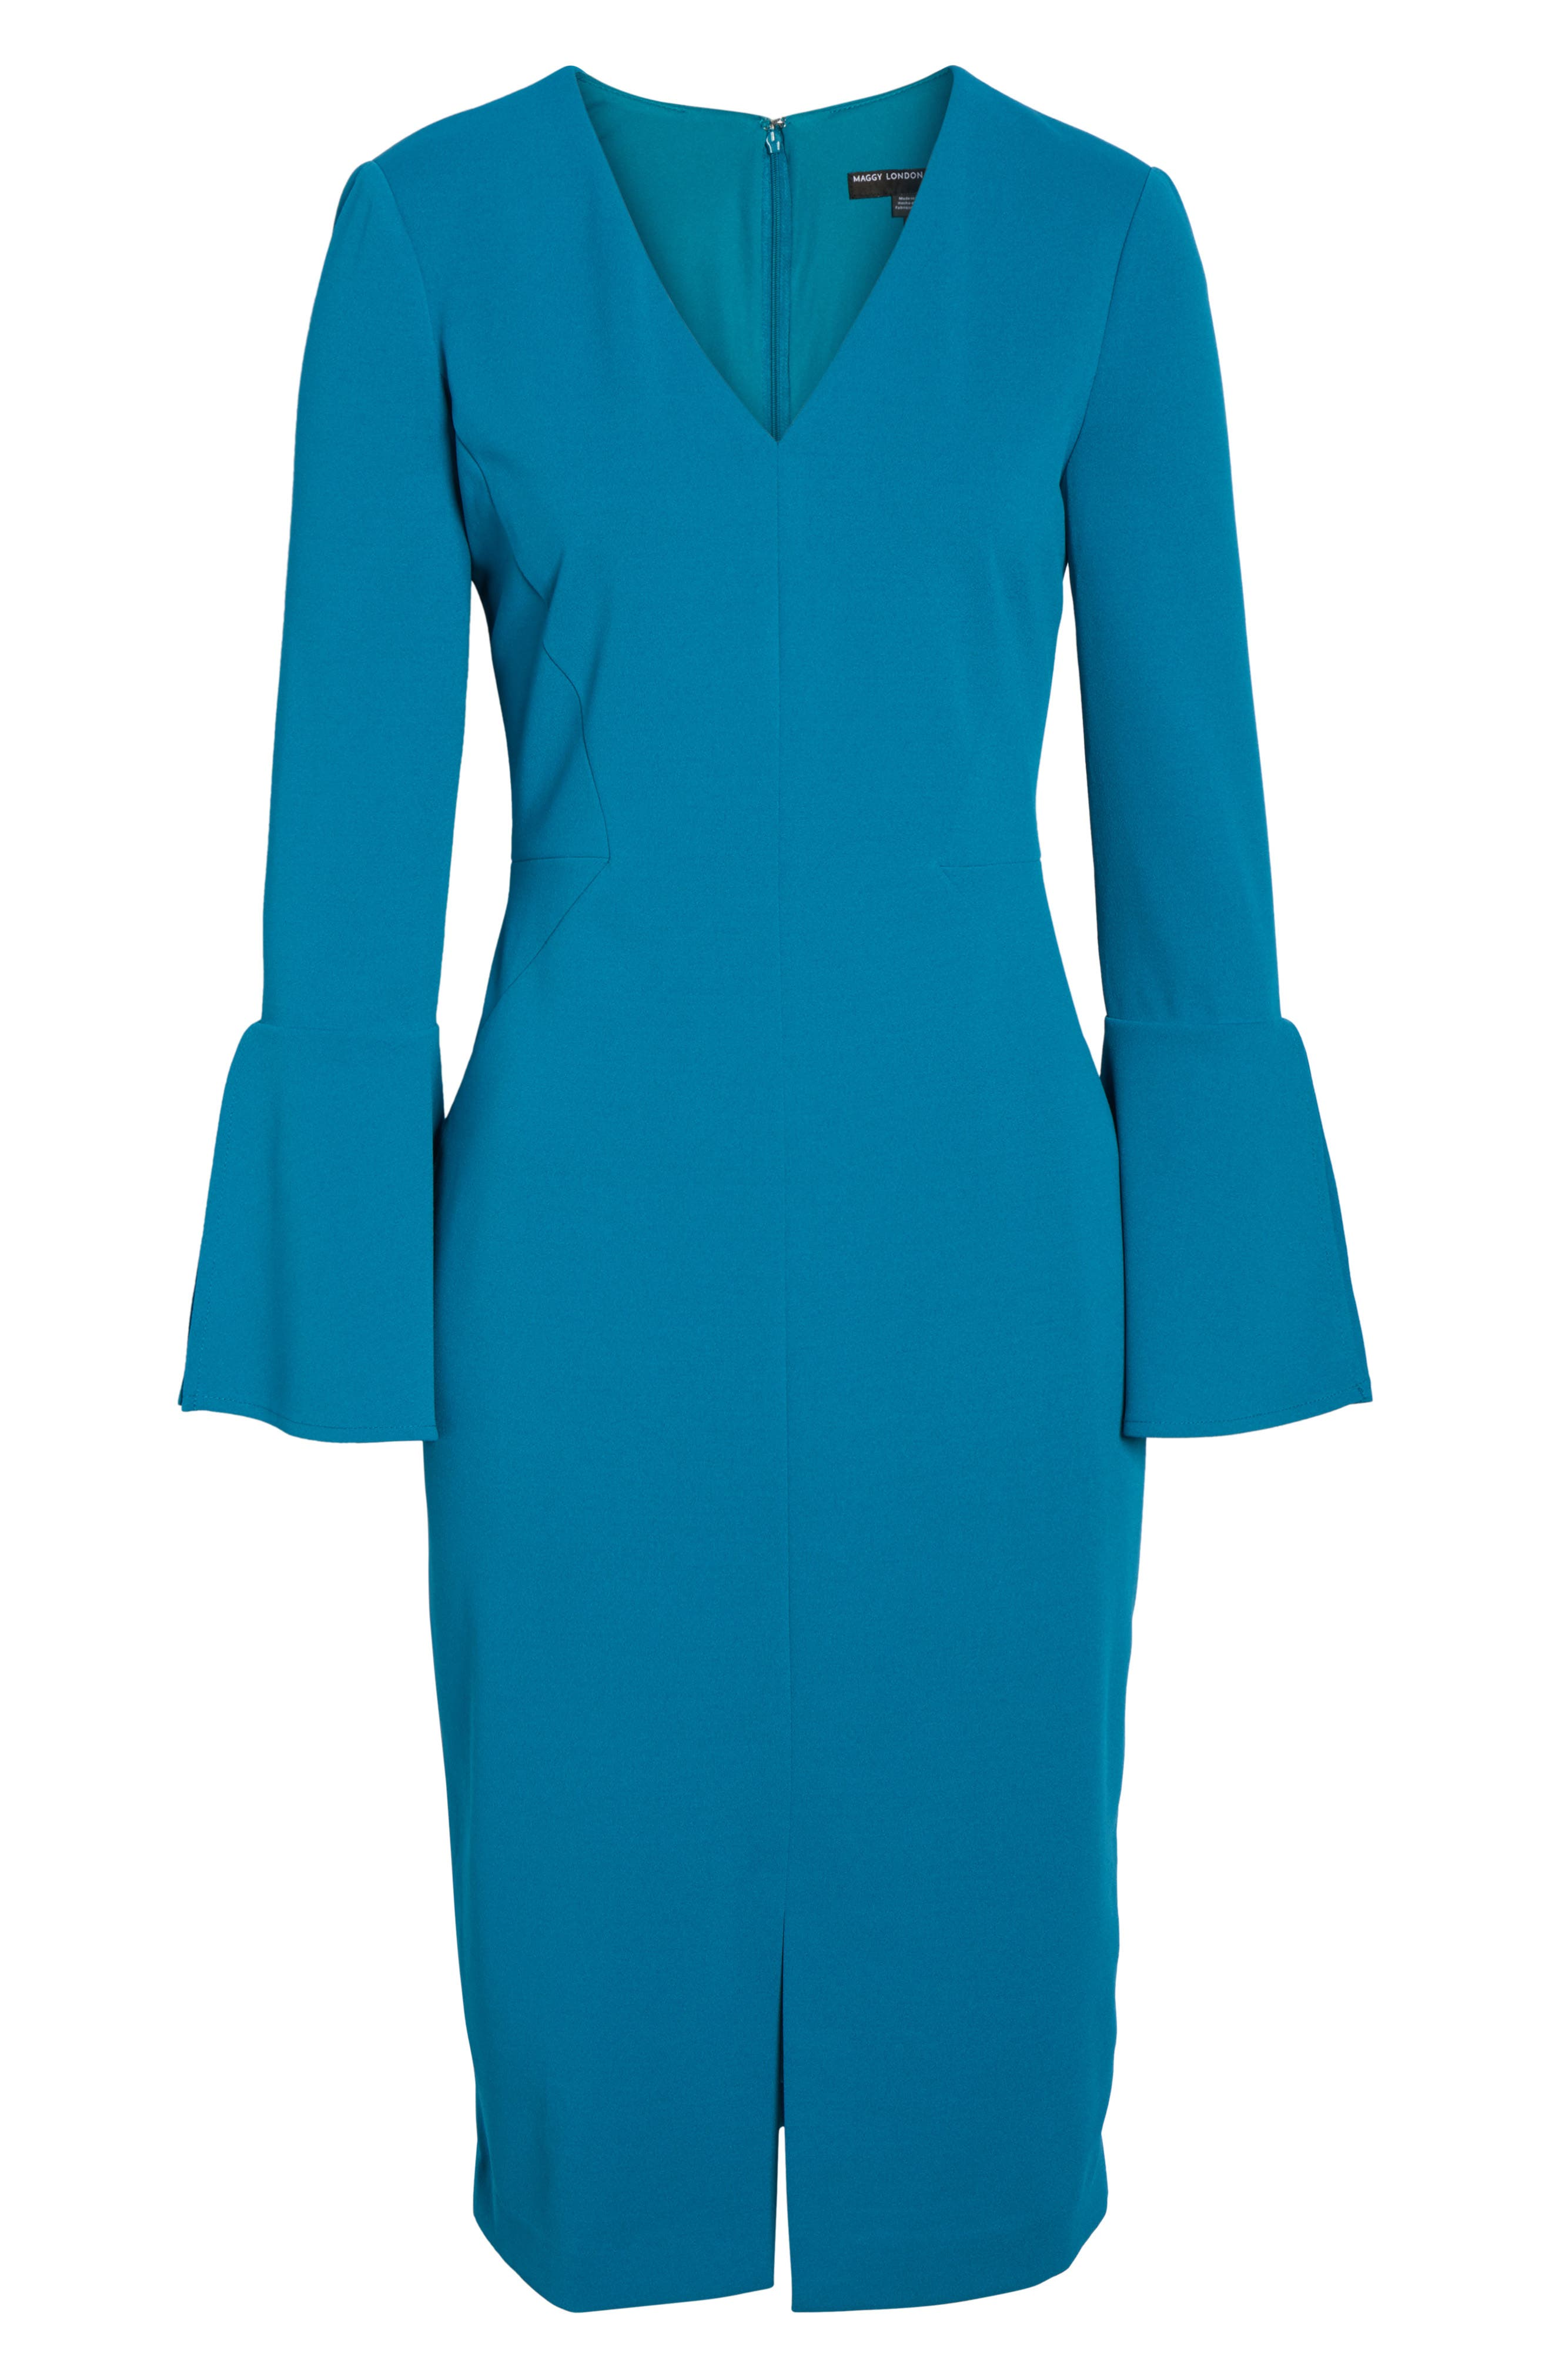 Bell Sleeve Sheath Dress,                             Alternate thumbnail 6, color,                             Teal